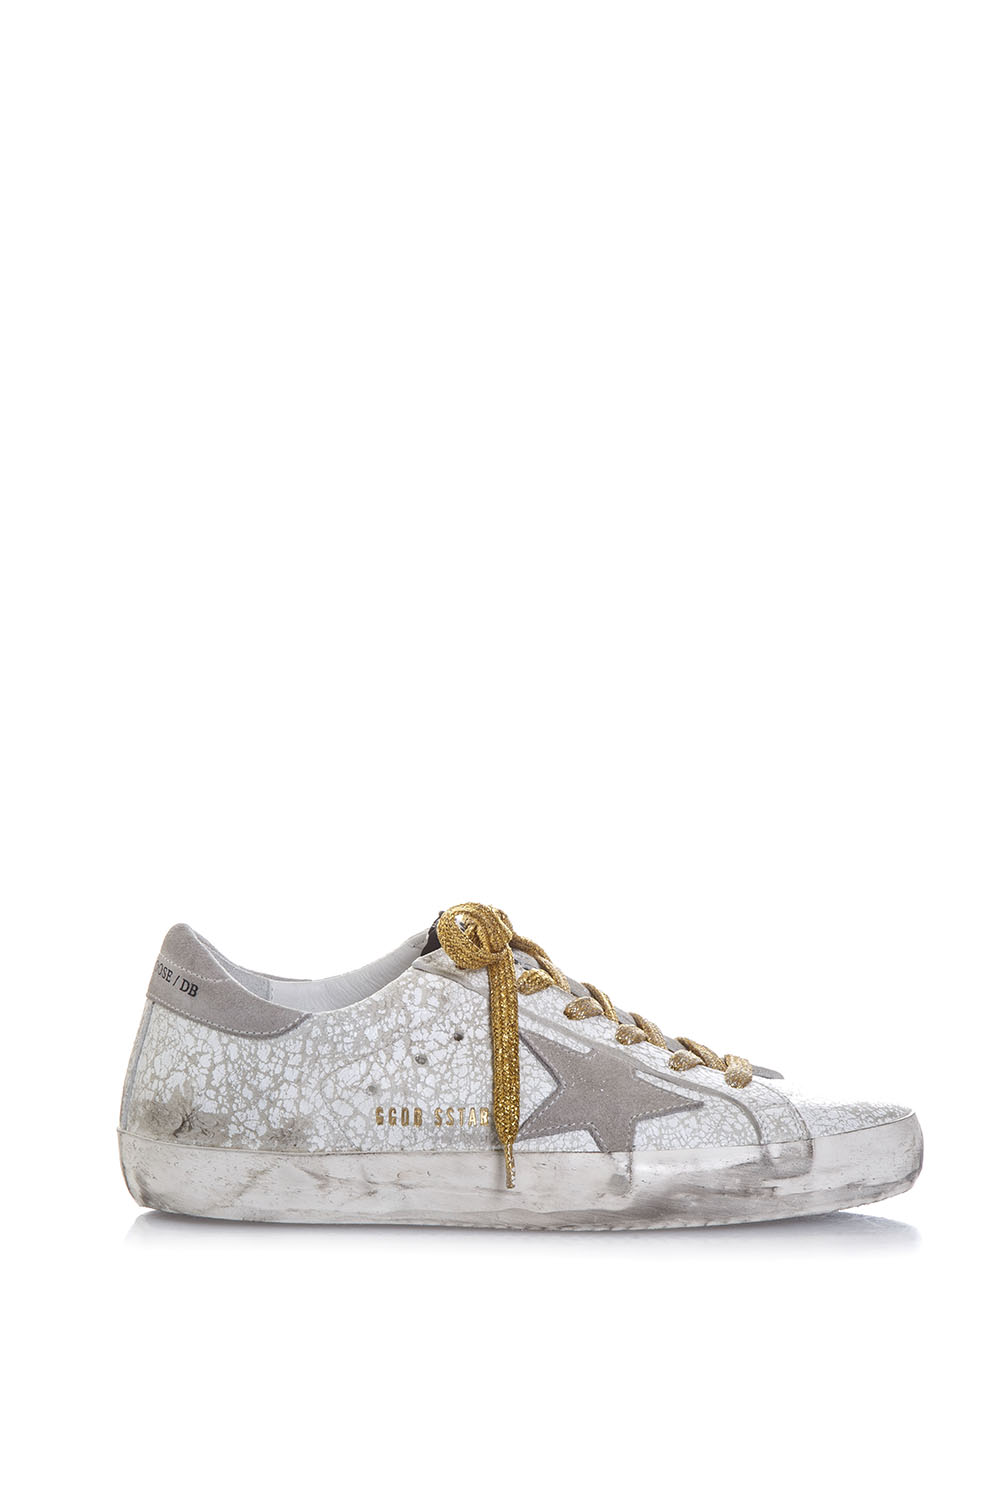 f711f4aff8be SUPERSTAR LEATHER SNEAKERS SS 2017 - GOLDEN GOOSE DELUXE BRAND - Boutique  Galiano